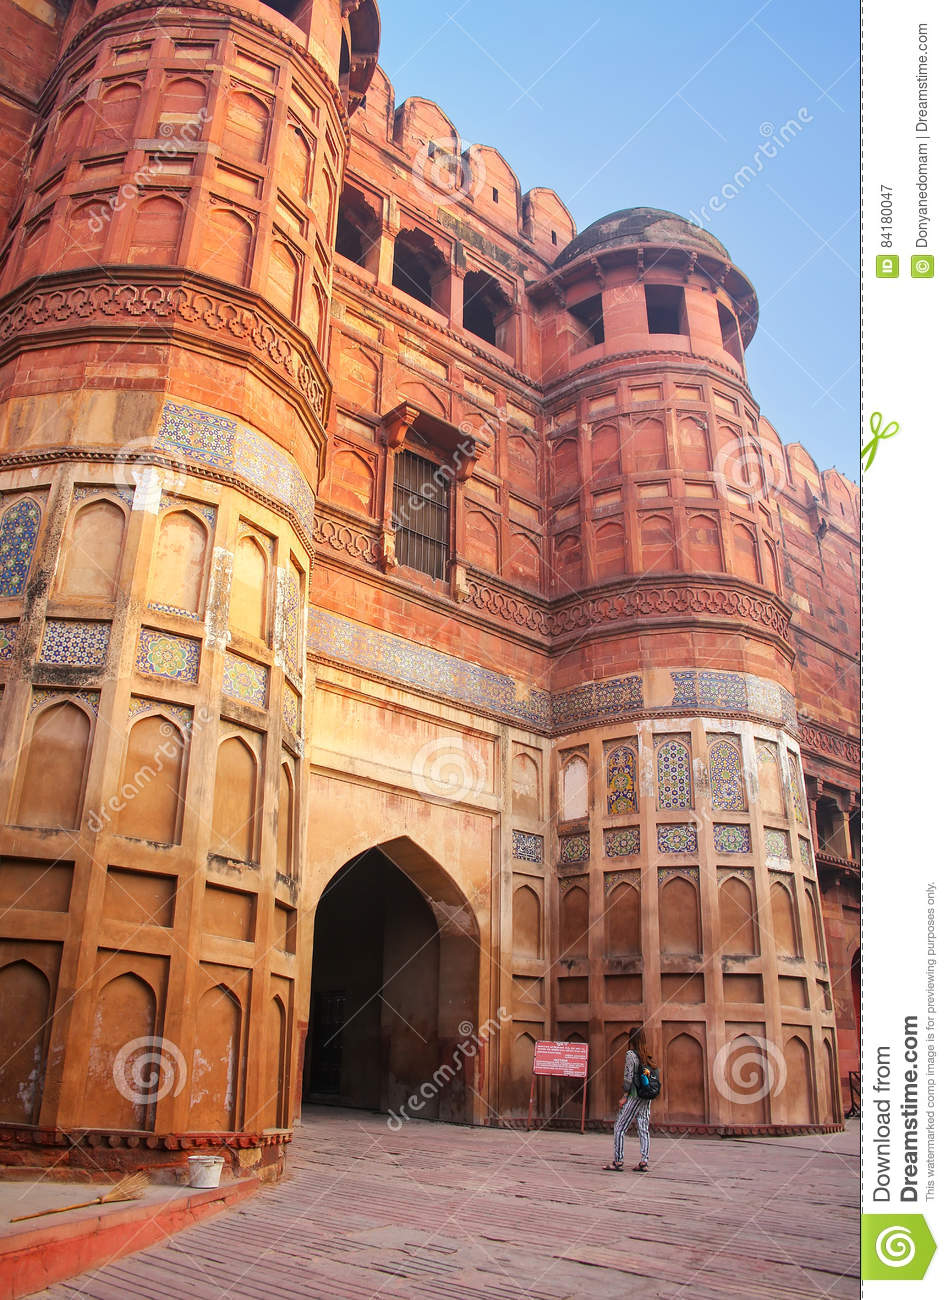 fort lawn muslim personals The lahore fort (punjabi and urdu: شاہی قلعہ ‬ ‎: shahi qila, or royal fort), is a citadel in the city of lahore, pakistan the fortress is located at the northern end of lahore's walled city, and spreads over an area greater than 20 hectares it contains 21 notable monuments, some of which date to the era of emperor akbarthe lahore fort is.